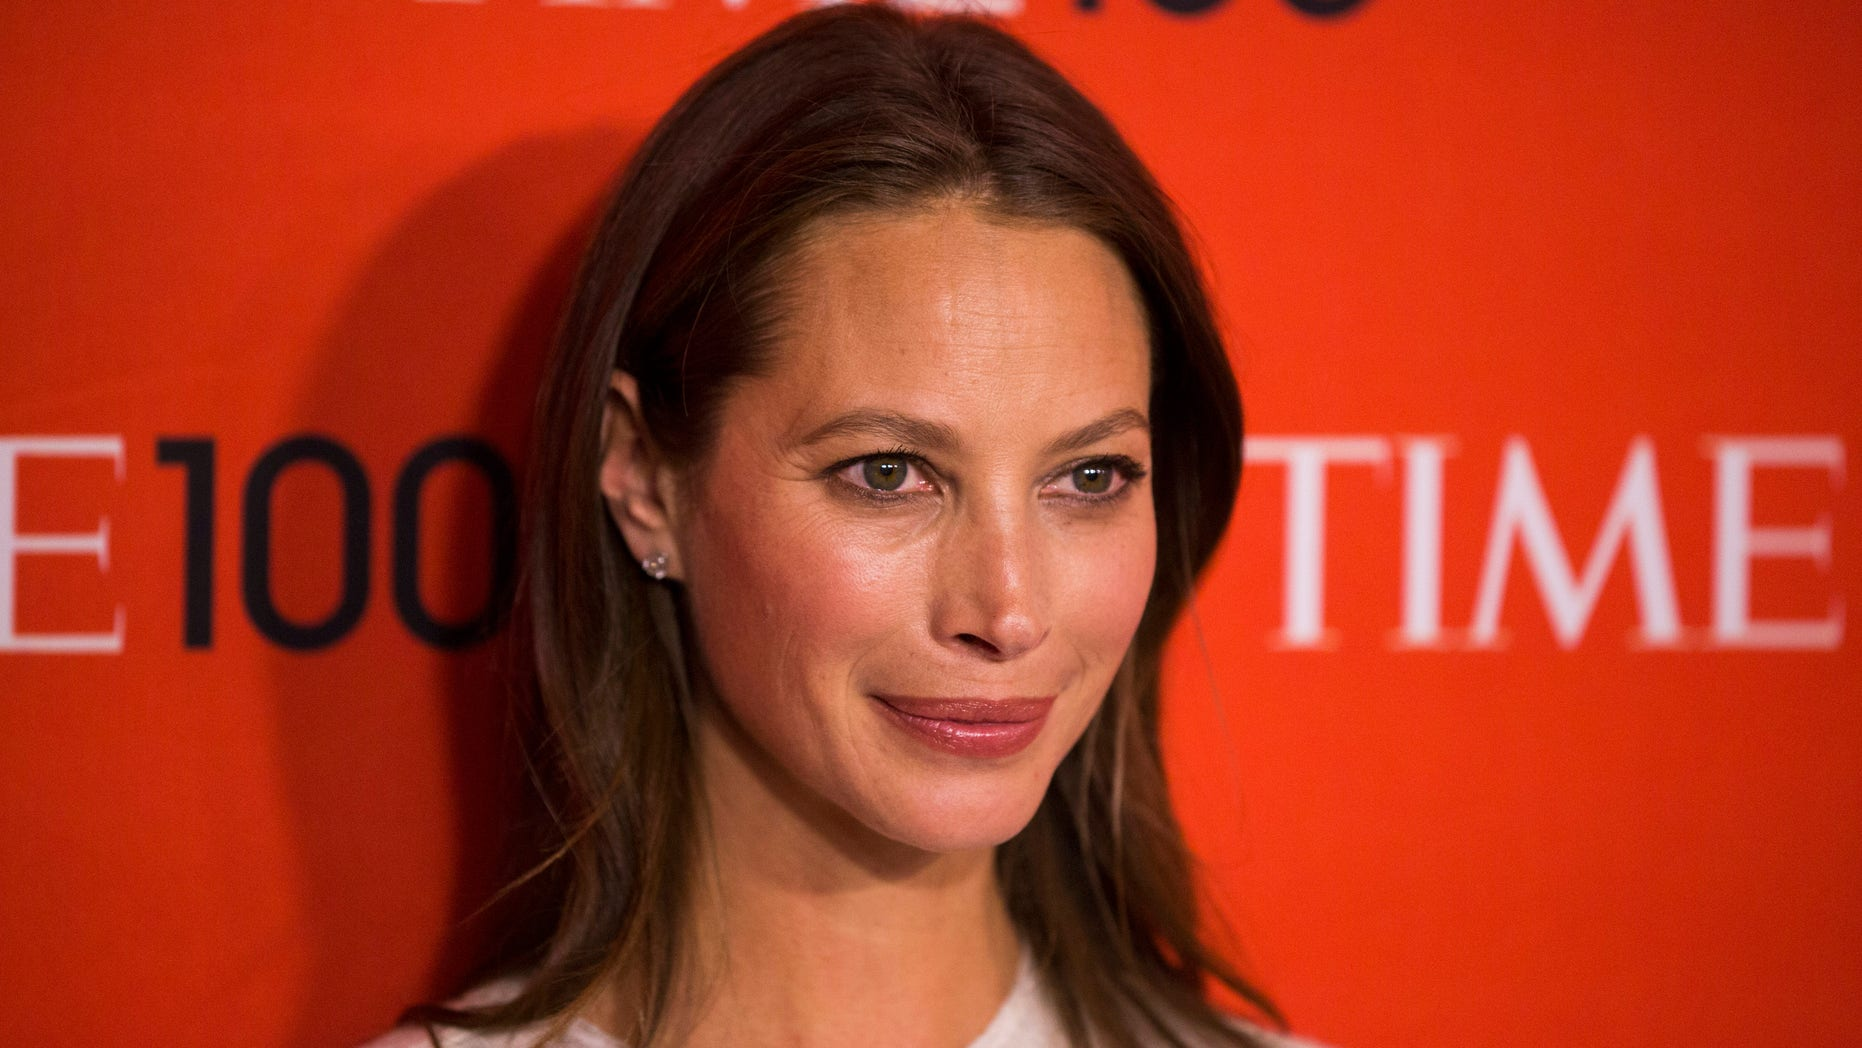 Honoree and model Christy Turlington Burns arrives at the Time 100 gala celebrating the magazine's naming of the 100 most influential people in the world for the past year, in New York April 29, 2014. REUTERS/Lucas Jackson (UNITED STATES - Tags: ENTERTAINMENT) - RTR3N658